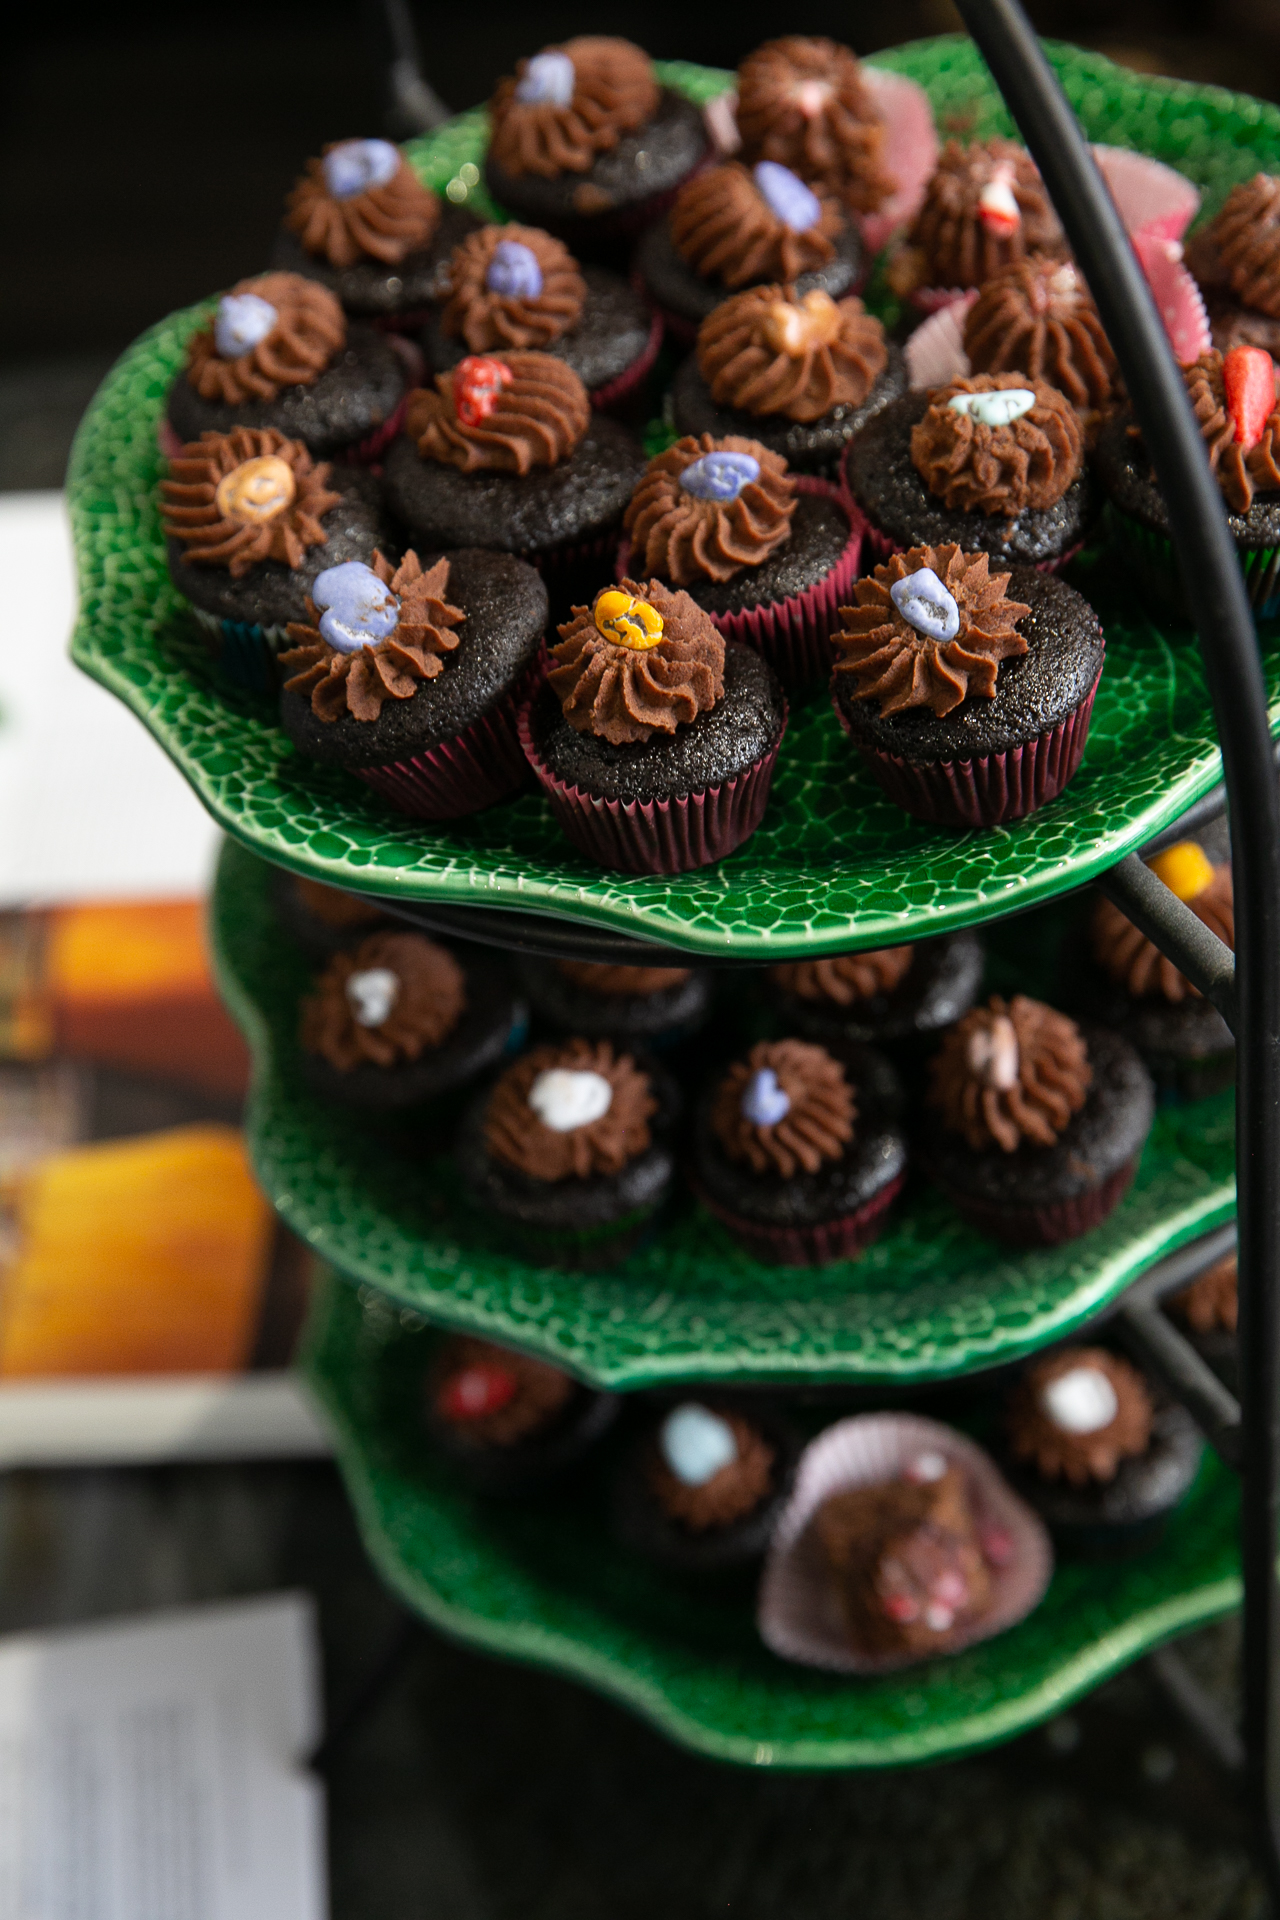 Chocolate Mini Cupcakes by Kyra Effren